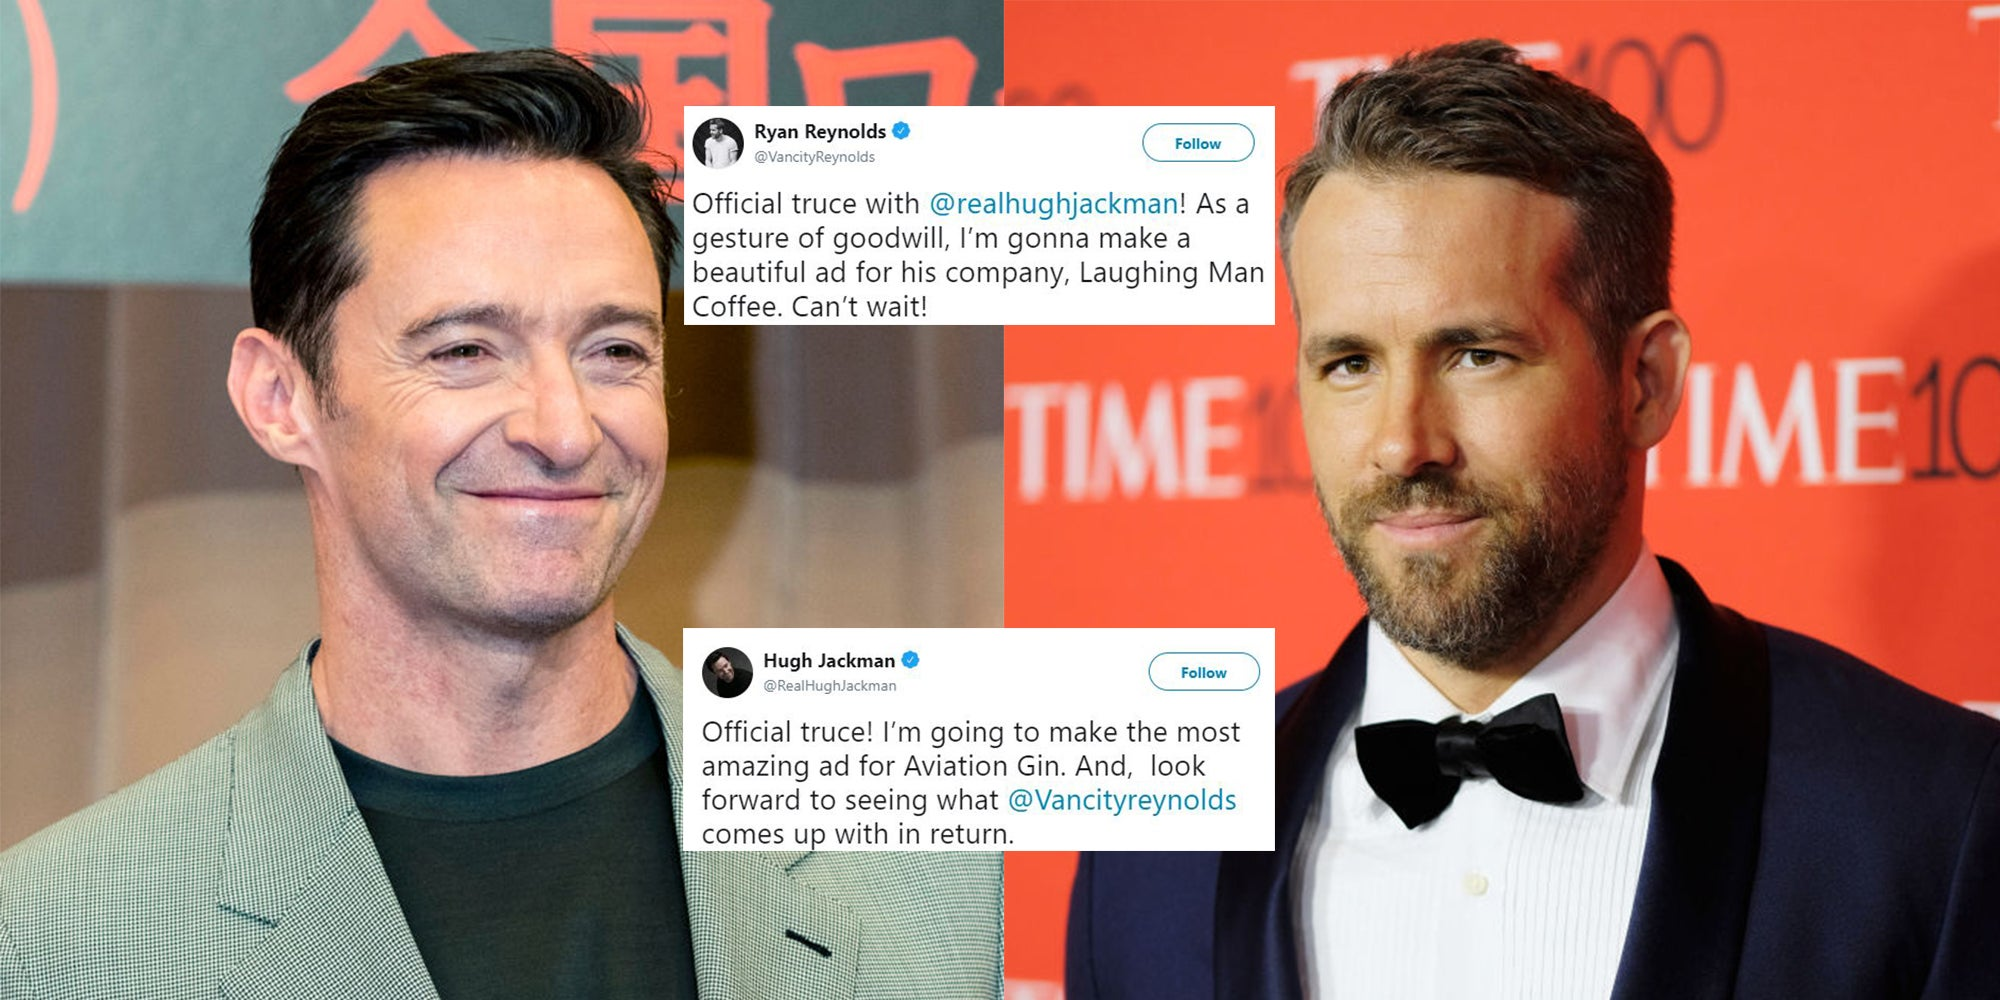 Ryan Reynolds and Hugh Jackman have announced that their 'feud' has